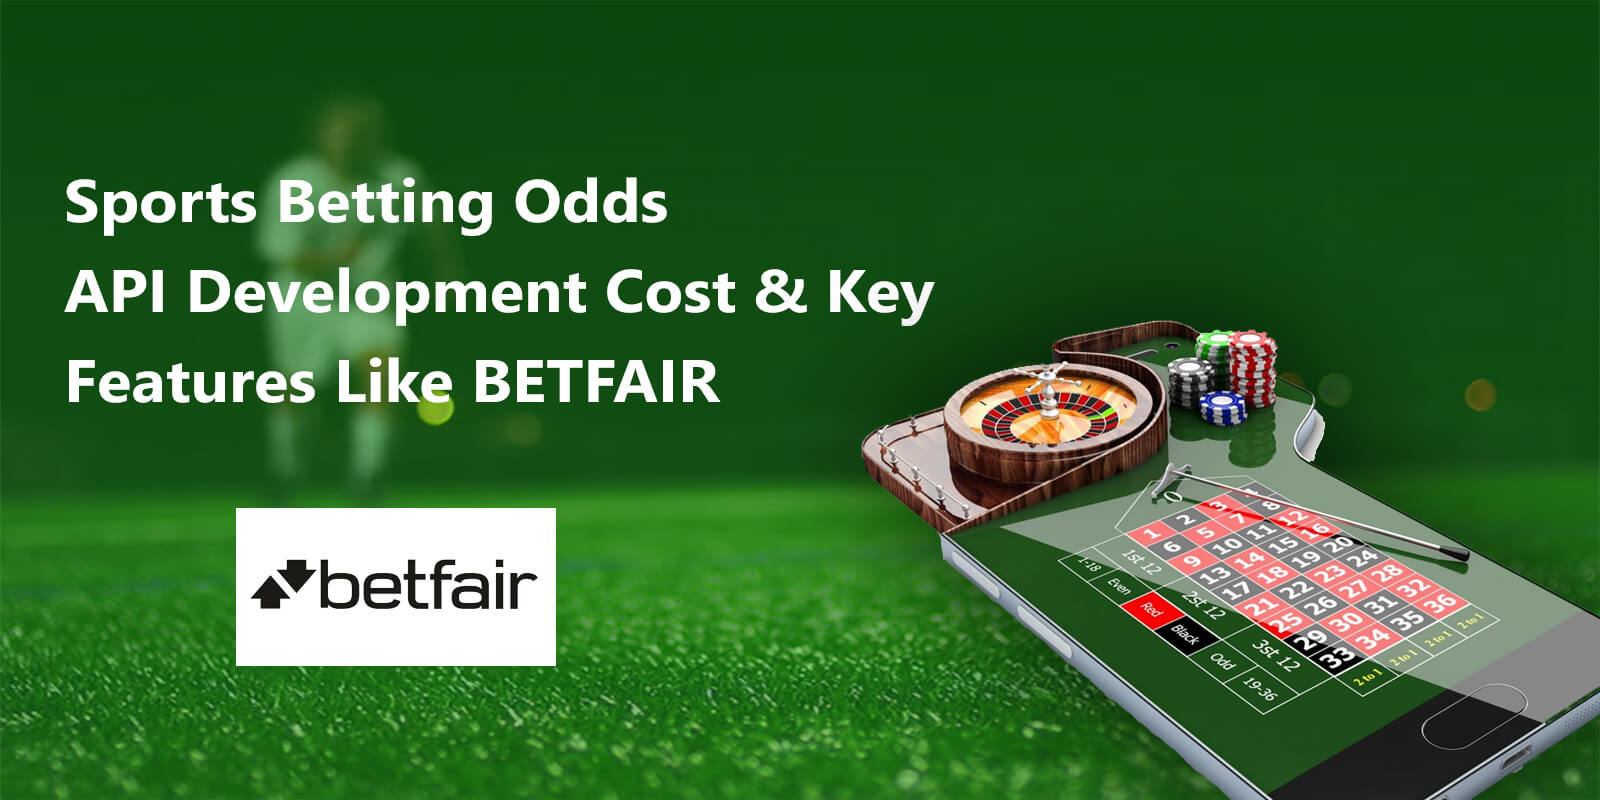 Online Sports Betting Odds API Development Cost & Key Features Like BETFAIR